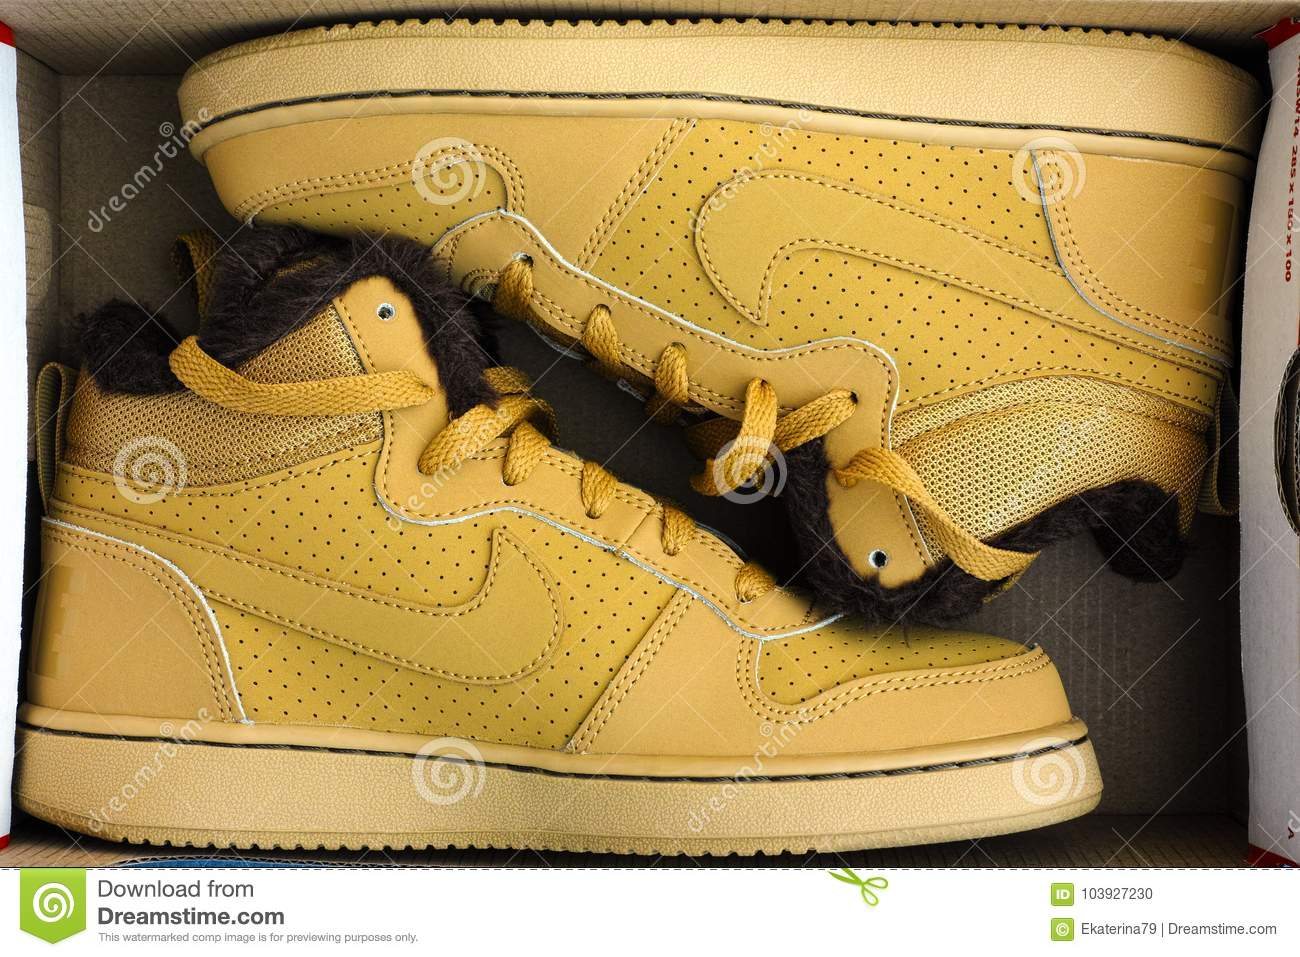 nike chaussures hiver